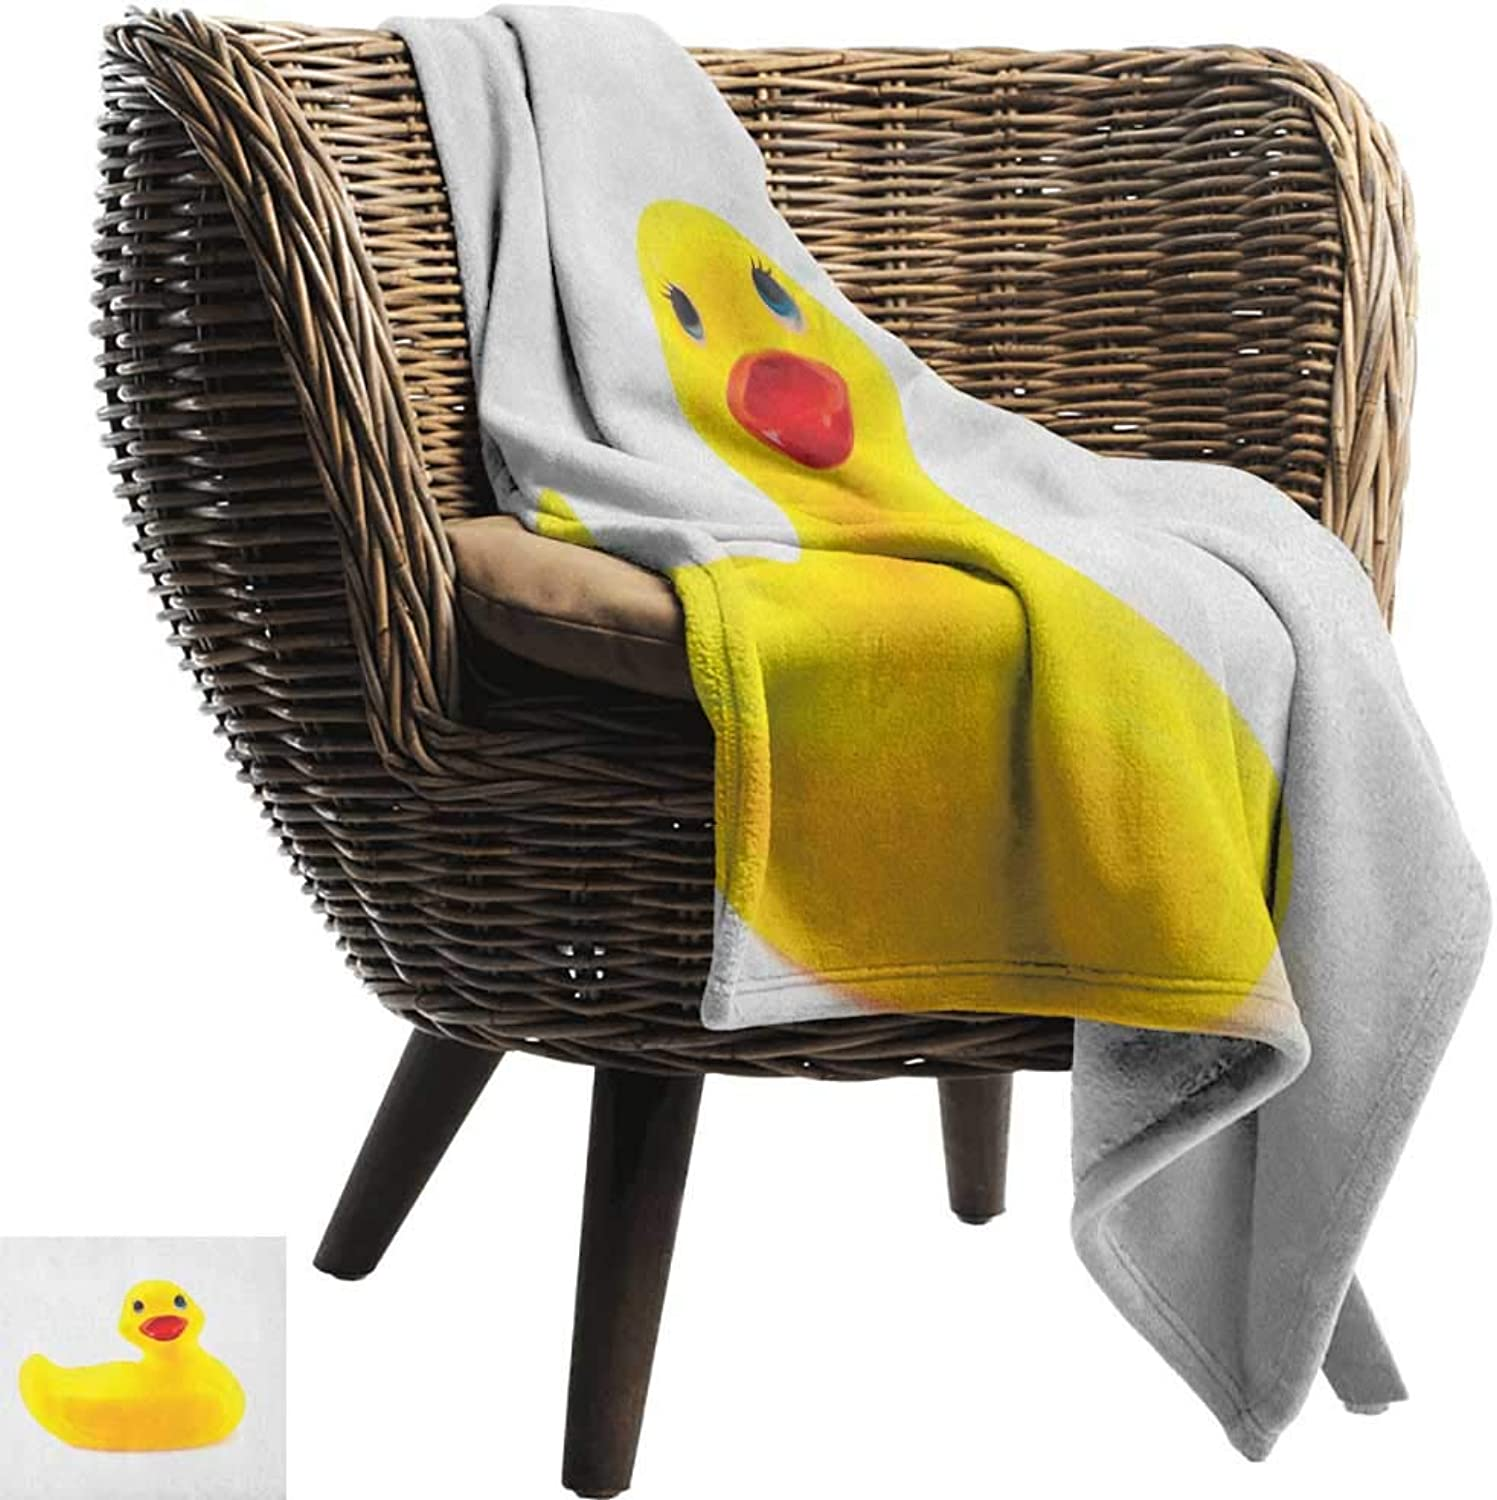 ZSUO Baby Blanket Yarn 50 x60  Inch Rubber Duck,Yellow Squeak Ducky Toy Fun Bubble Bath Animal Kids Room Duckling Print White and Yellow Lightweight Microfiber,All Season for Couch or Bed